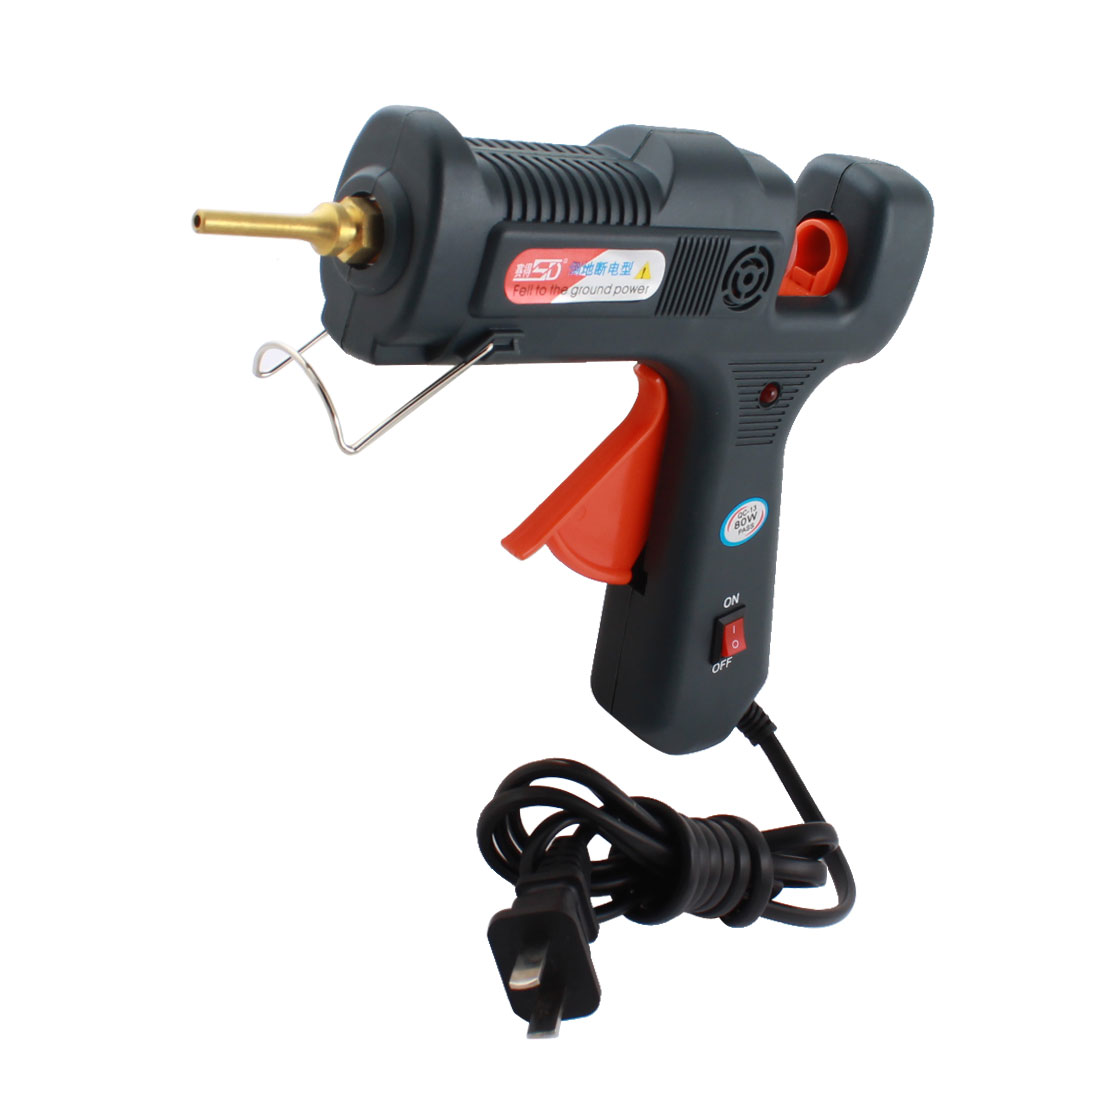 AC 100-240V US Plug 80W Triggered Electric Hot Melt Glue Gun SD-901